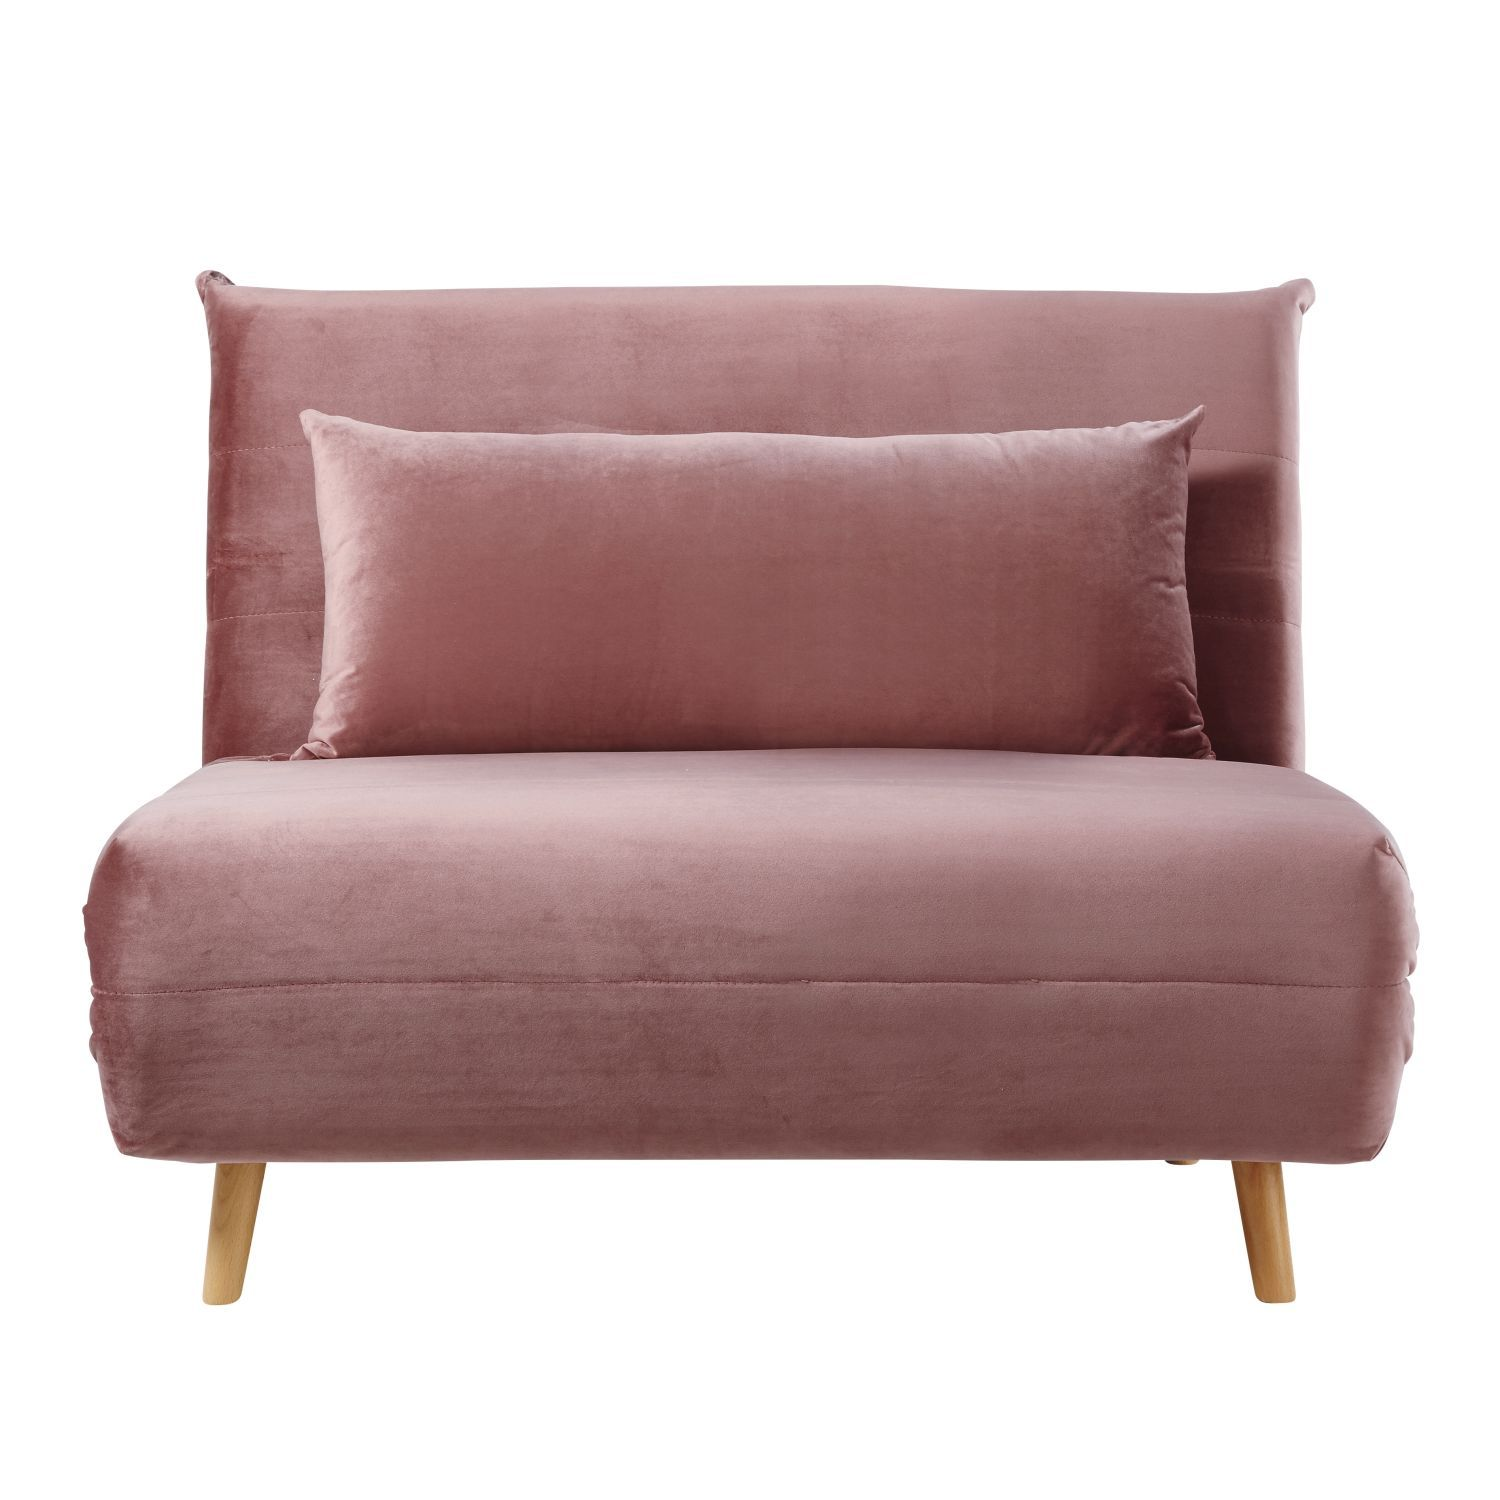 Day Beds Bench Seats In 2019 Sofa Bed Pink Bedding Sofa - Chauffeuse Haru